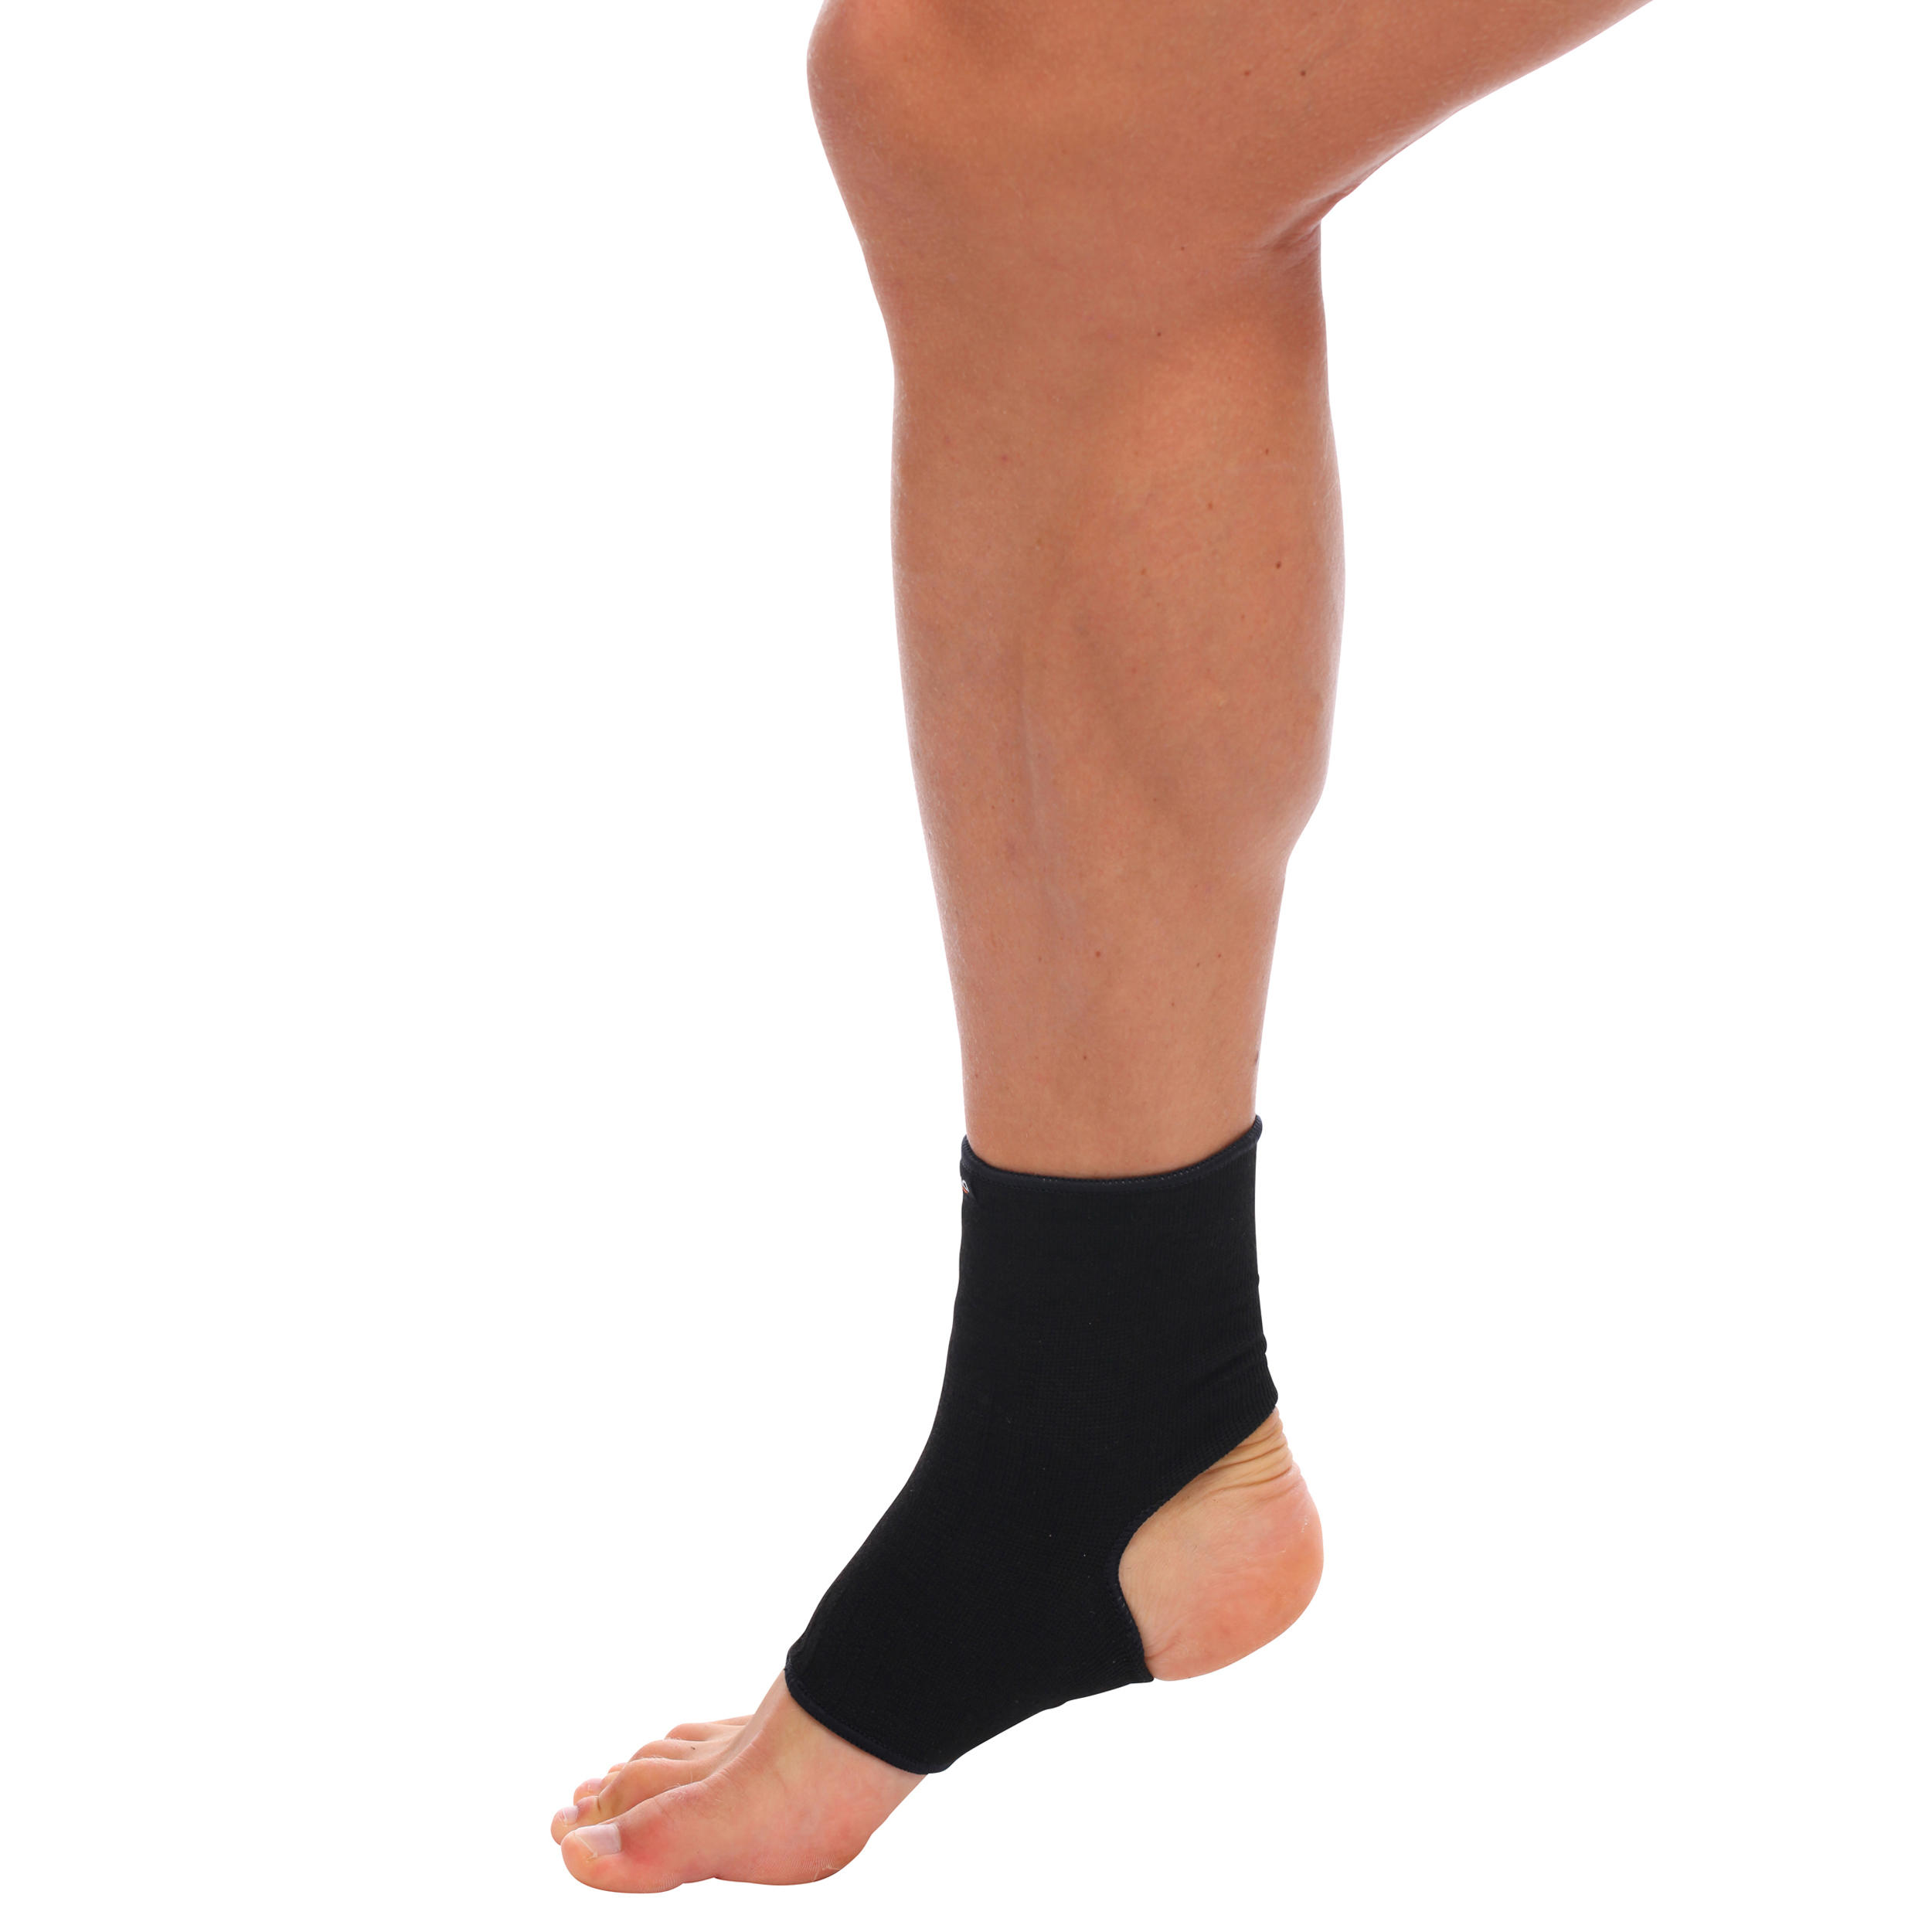 Soft 100 Right/Left Men's/Women's Compression Ankle Support - Black